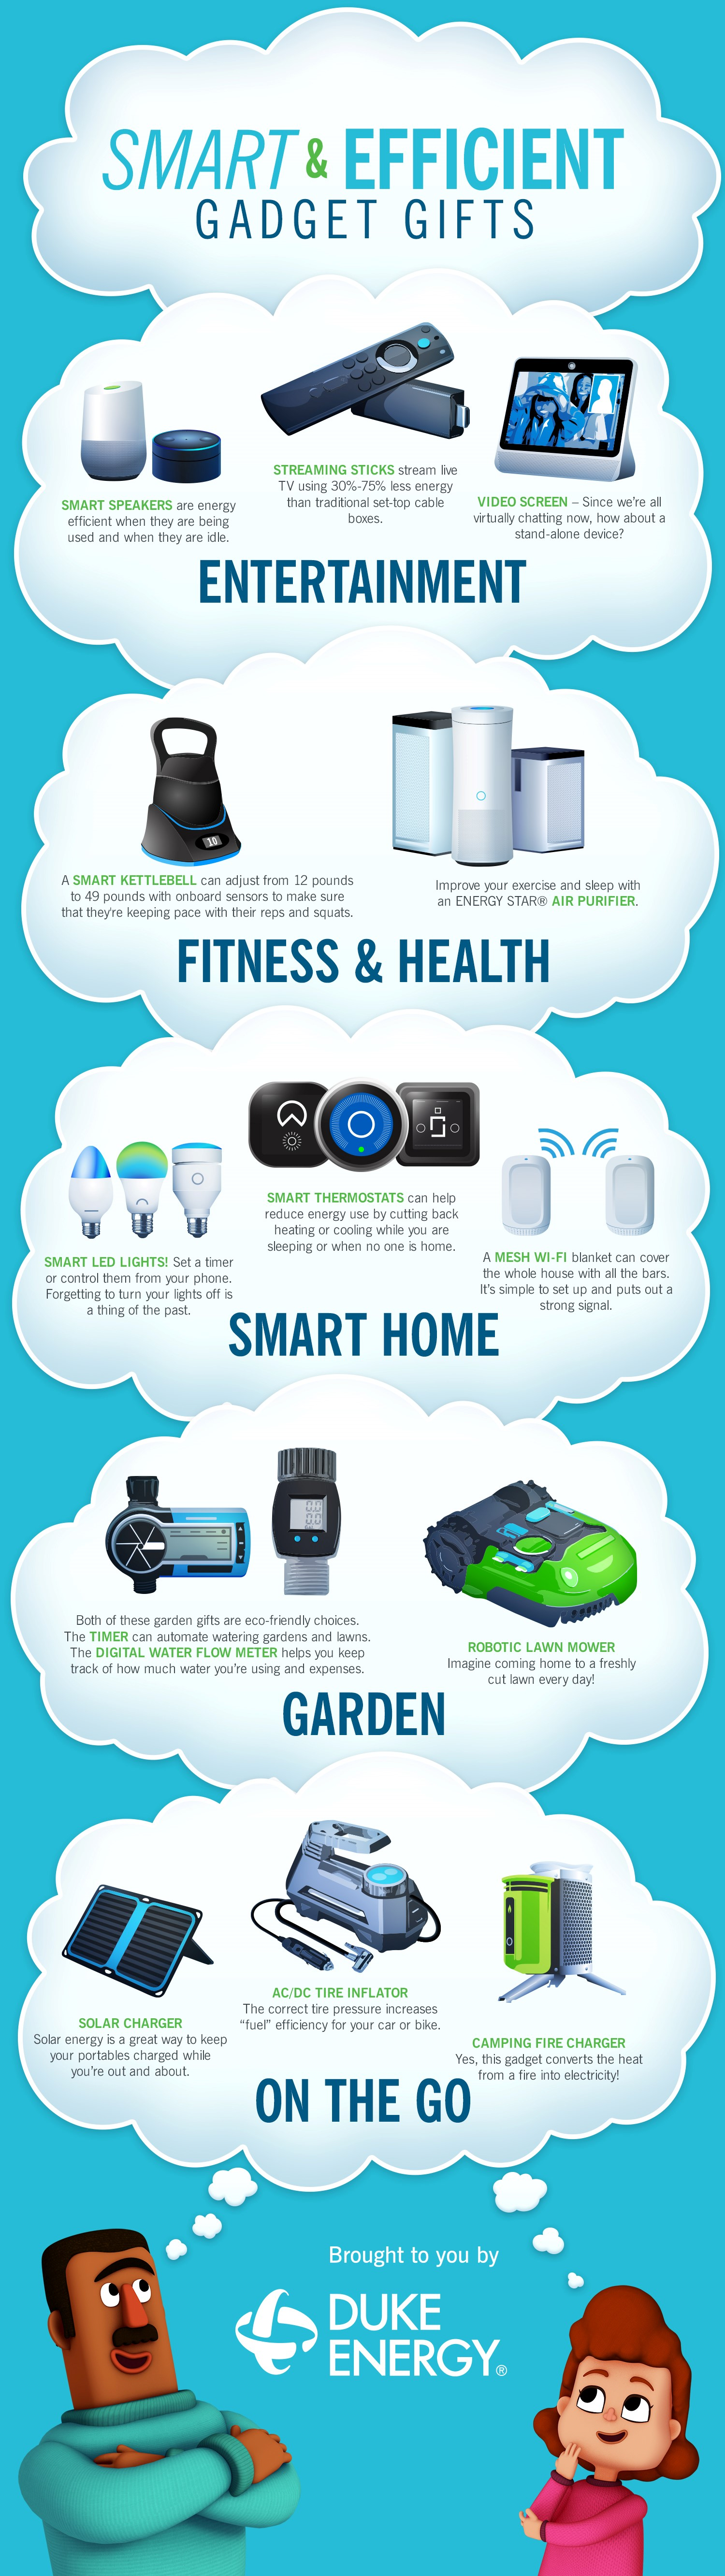 Give a Gadget Gift Infographic